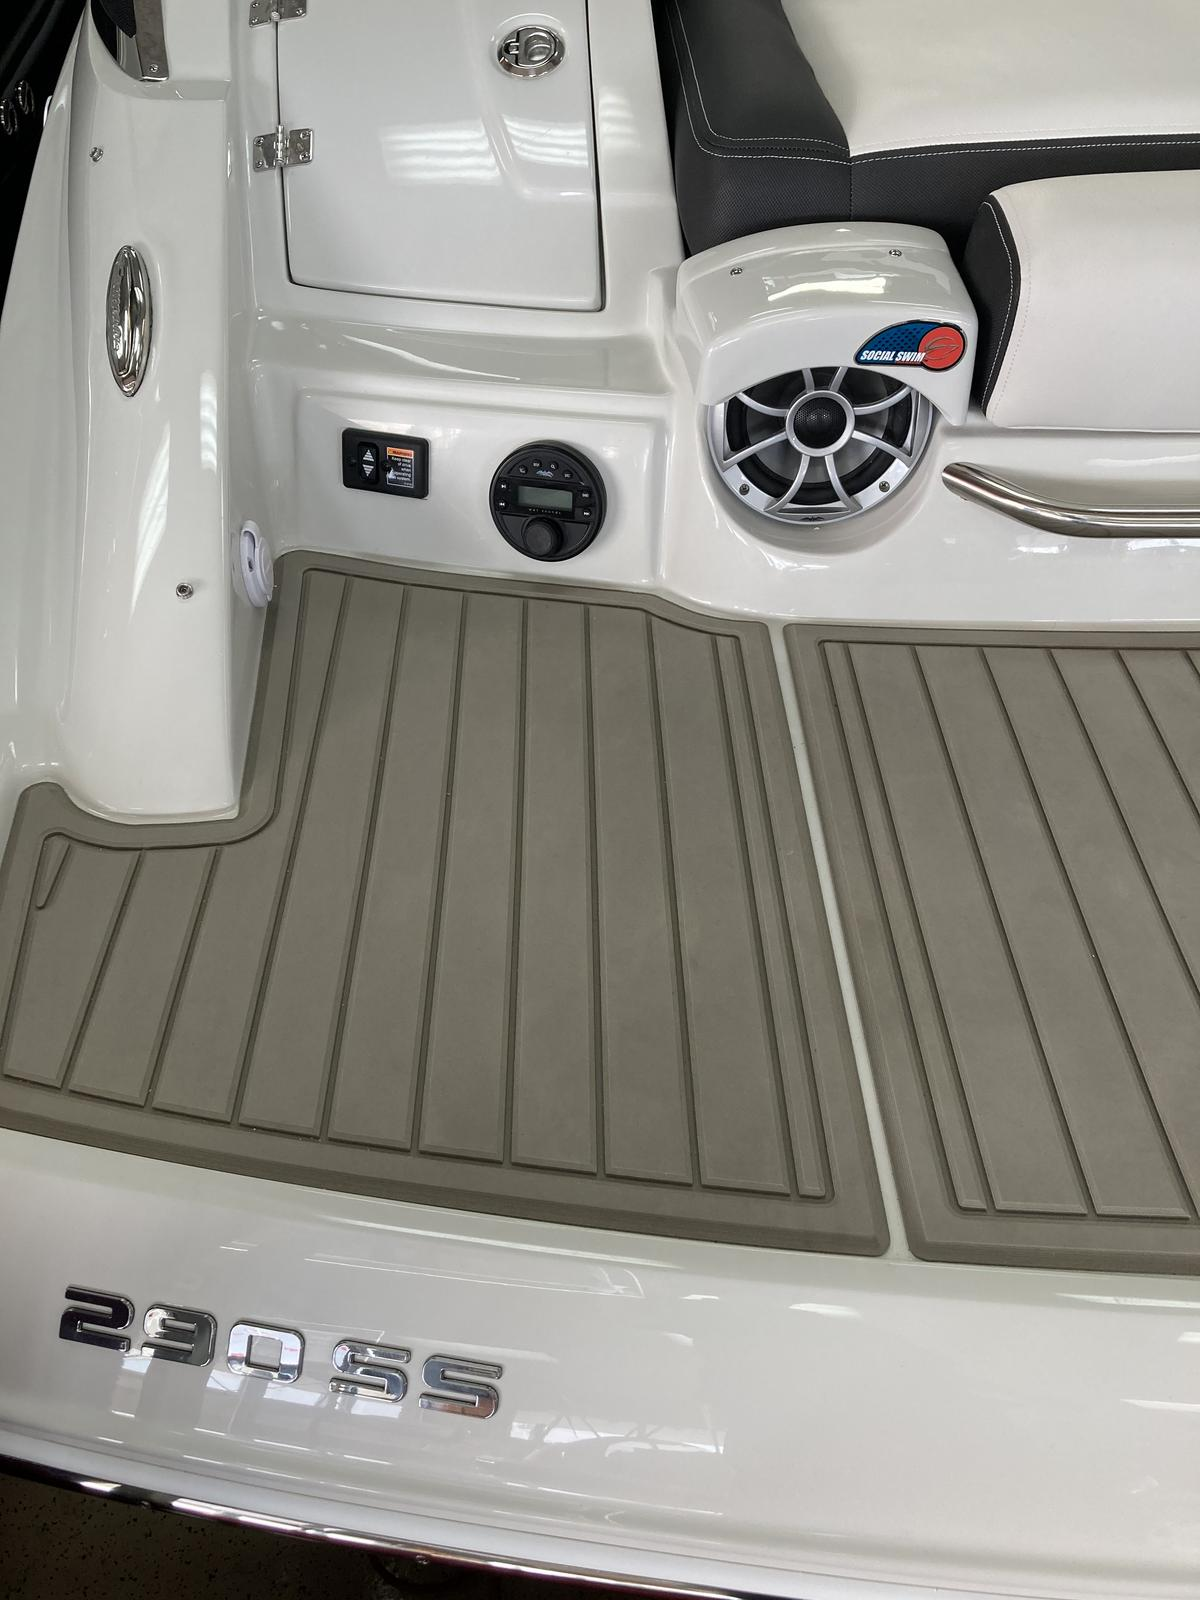 2021 Crownline boat for sale, model of the boat is 290 SS & Image # 6 of 7